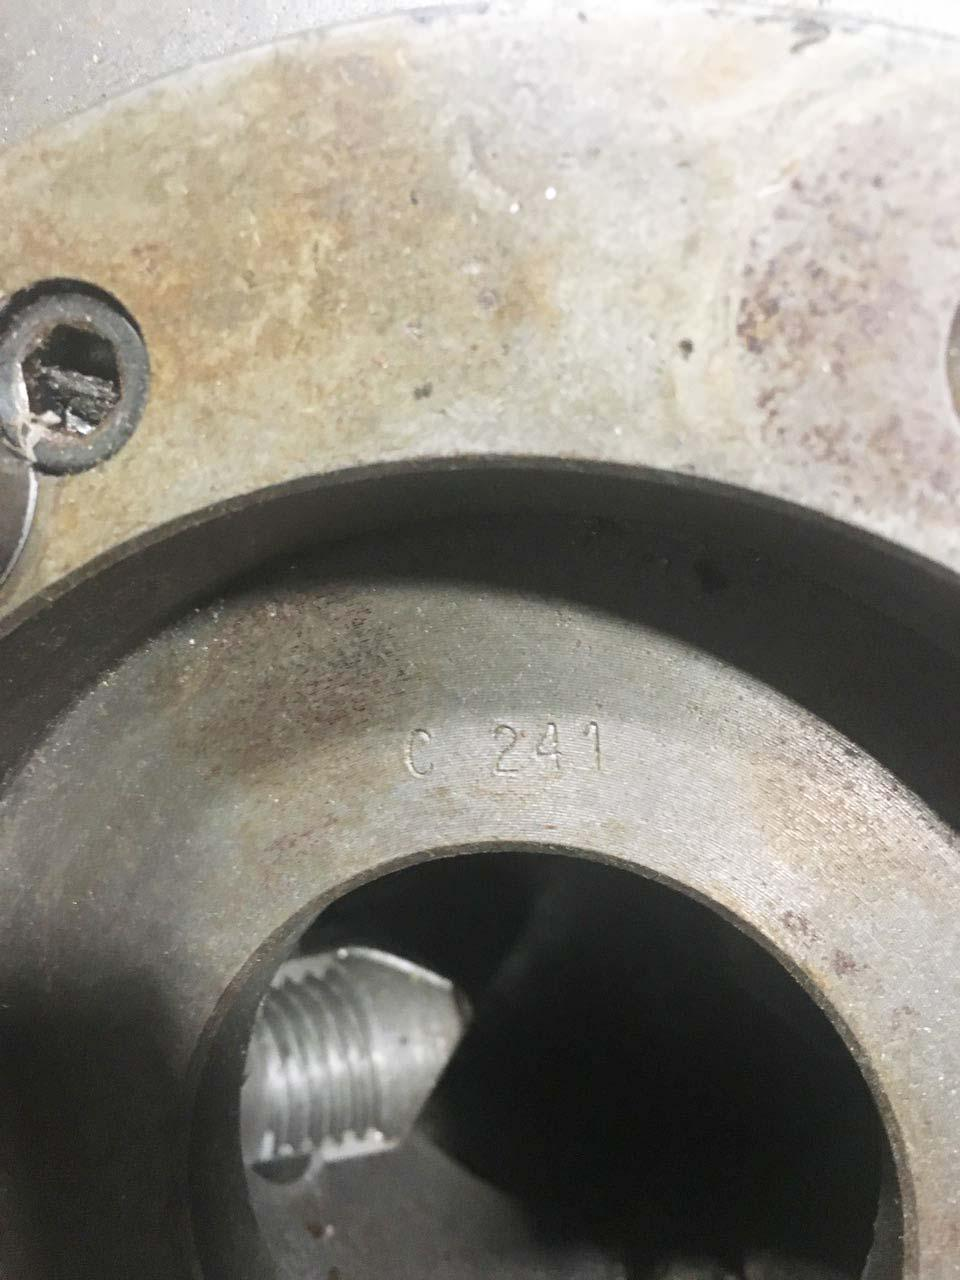 """10"""" BUCK 4-JAW INDEPENDENT CHUCK, Model 1310, 3.015"""" Thru-Hole Diameter, D-Style Spindle Mount, 2,000 RPM Max Speed, 0.39"""" - 9.84"""" Clamping Range."""